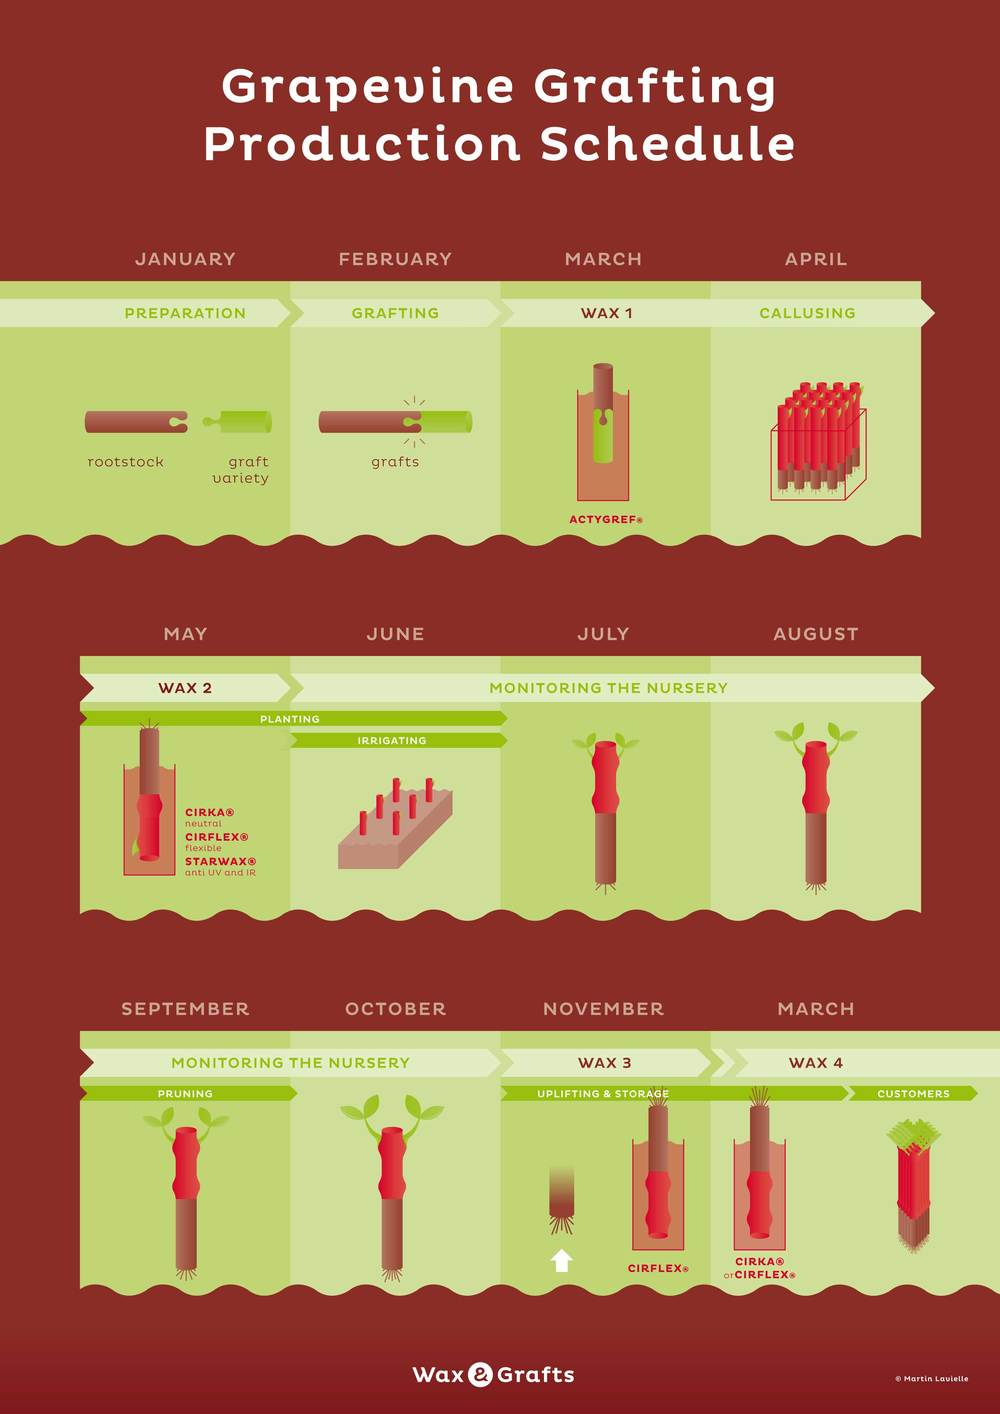 Wax-and-grafts-grapevine-grafting-production-schedule